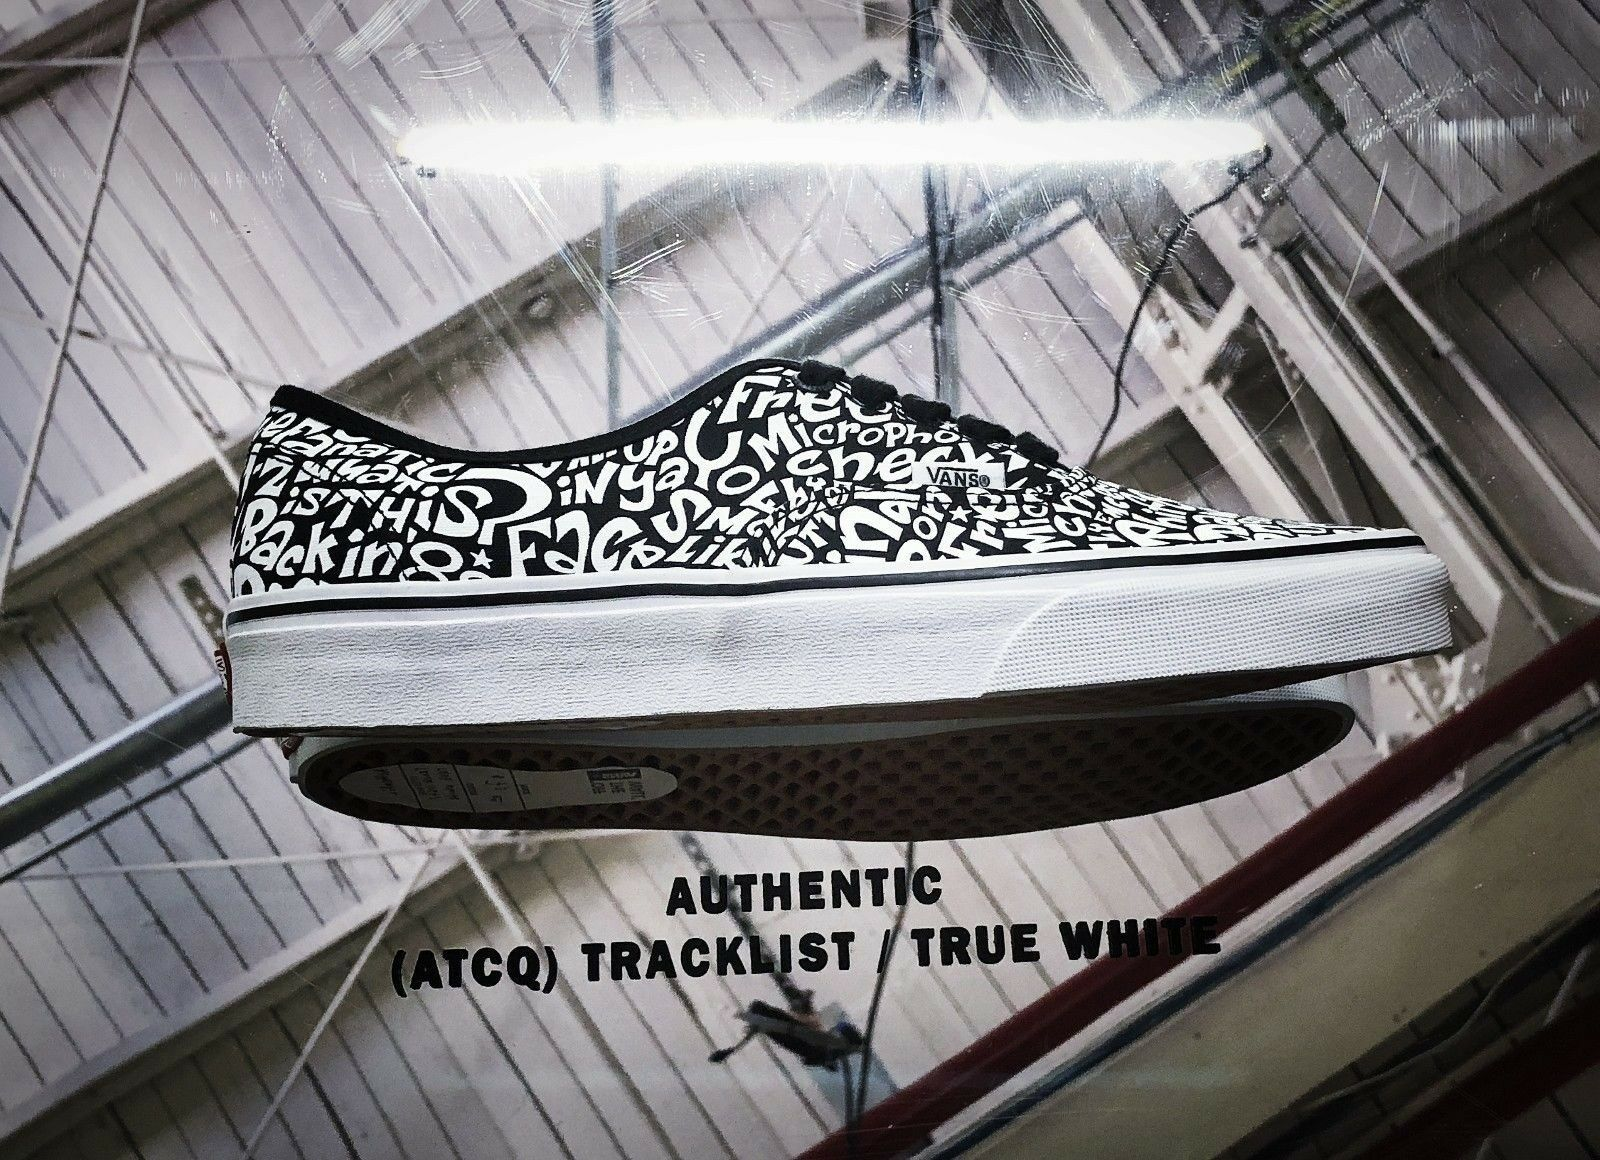 Vans X A Tribe Called Quest Authentic Tracklist Weiß, sz 13